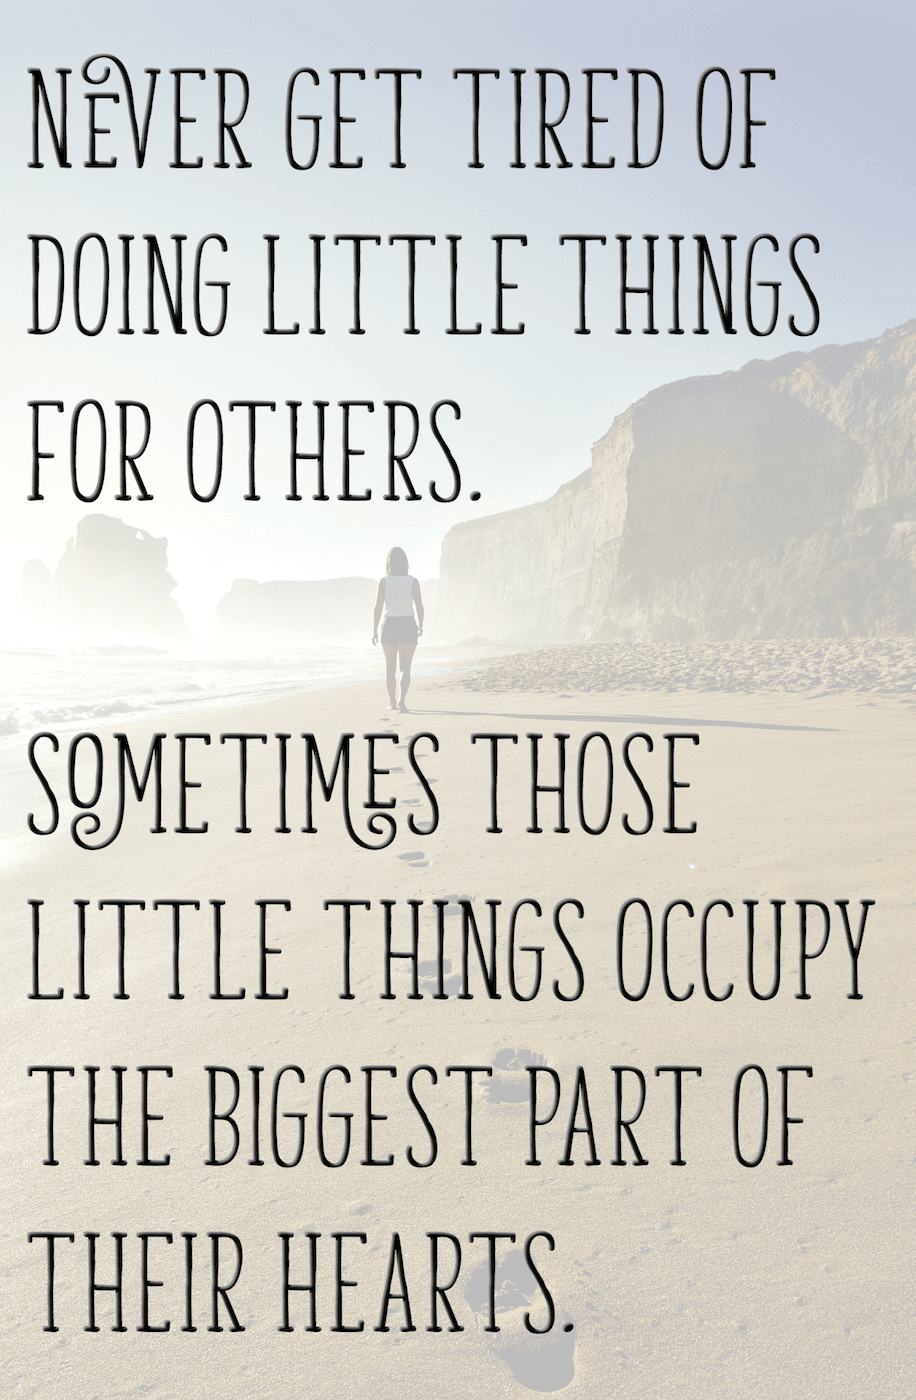 Never get tired of doing little things for others quote